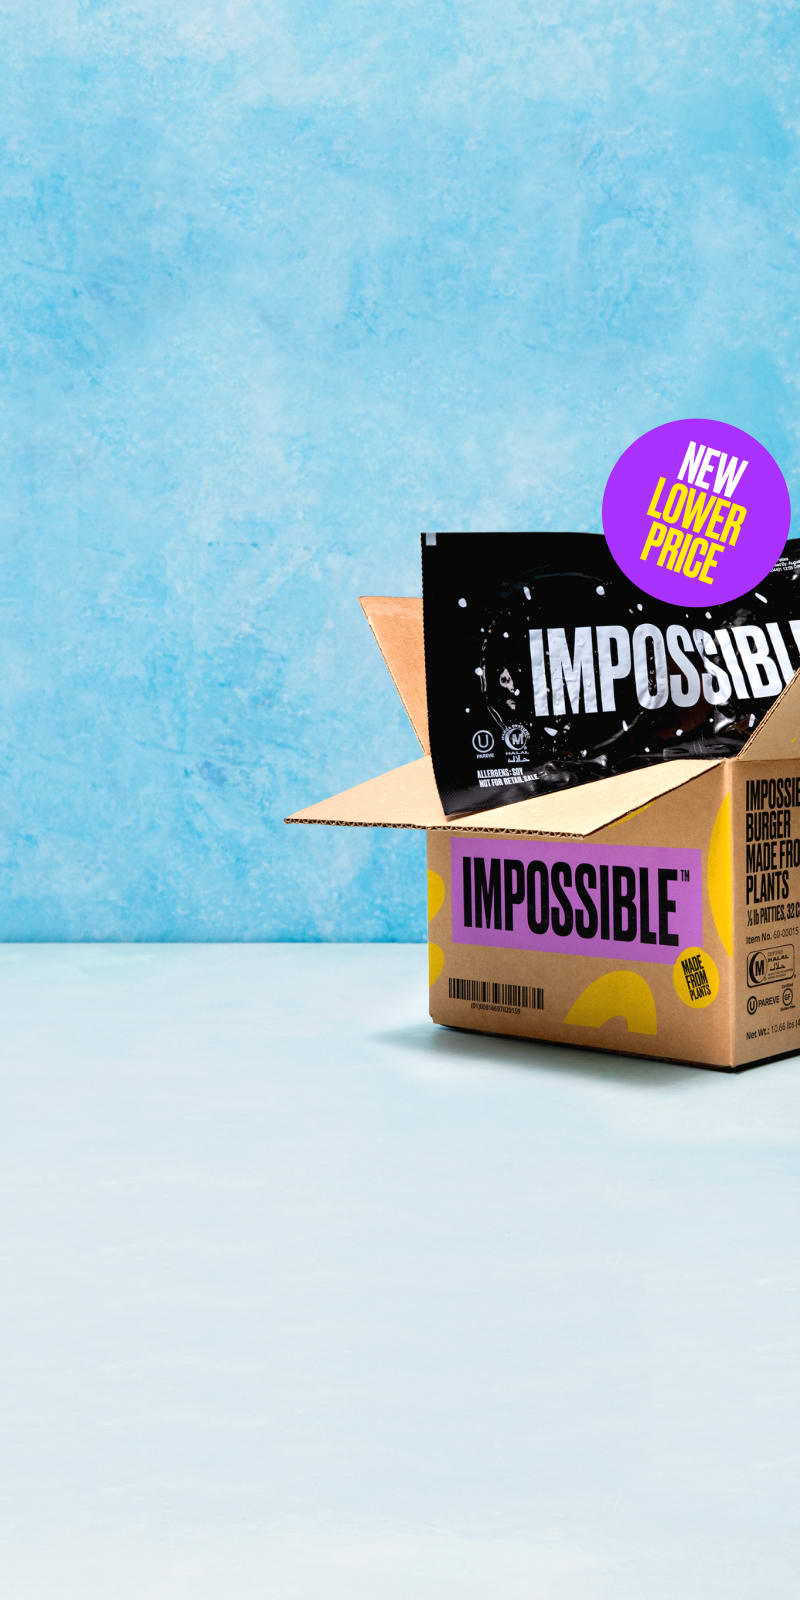 Impossible Burger packaged in Impossible branded box with new lower price sticker